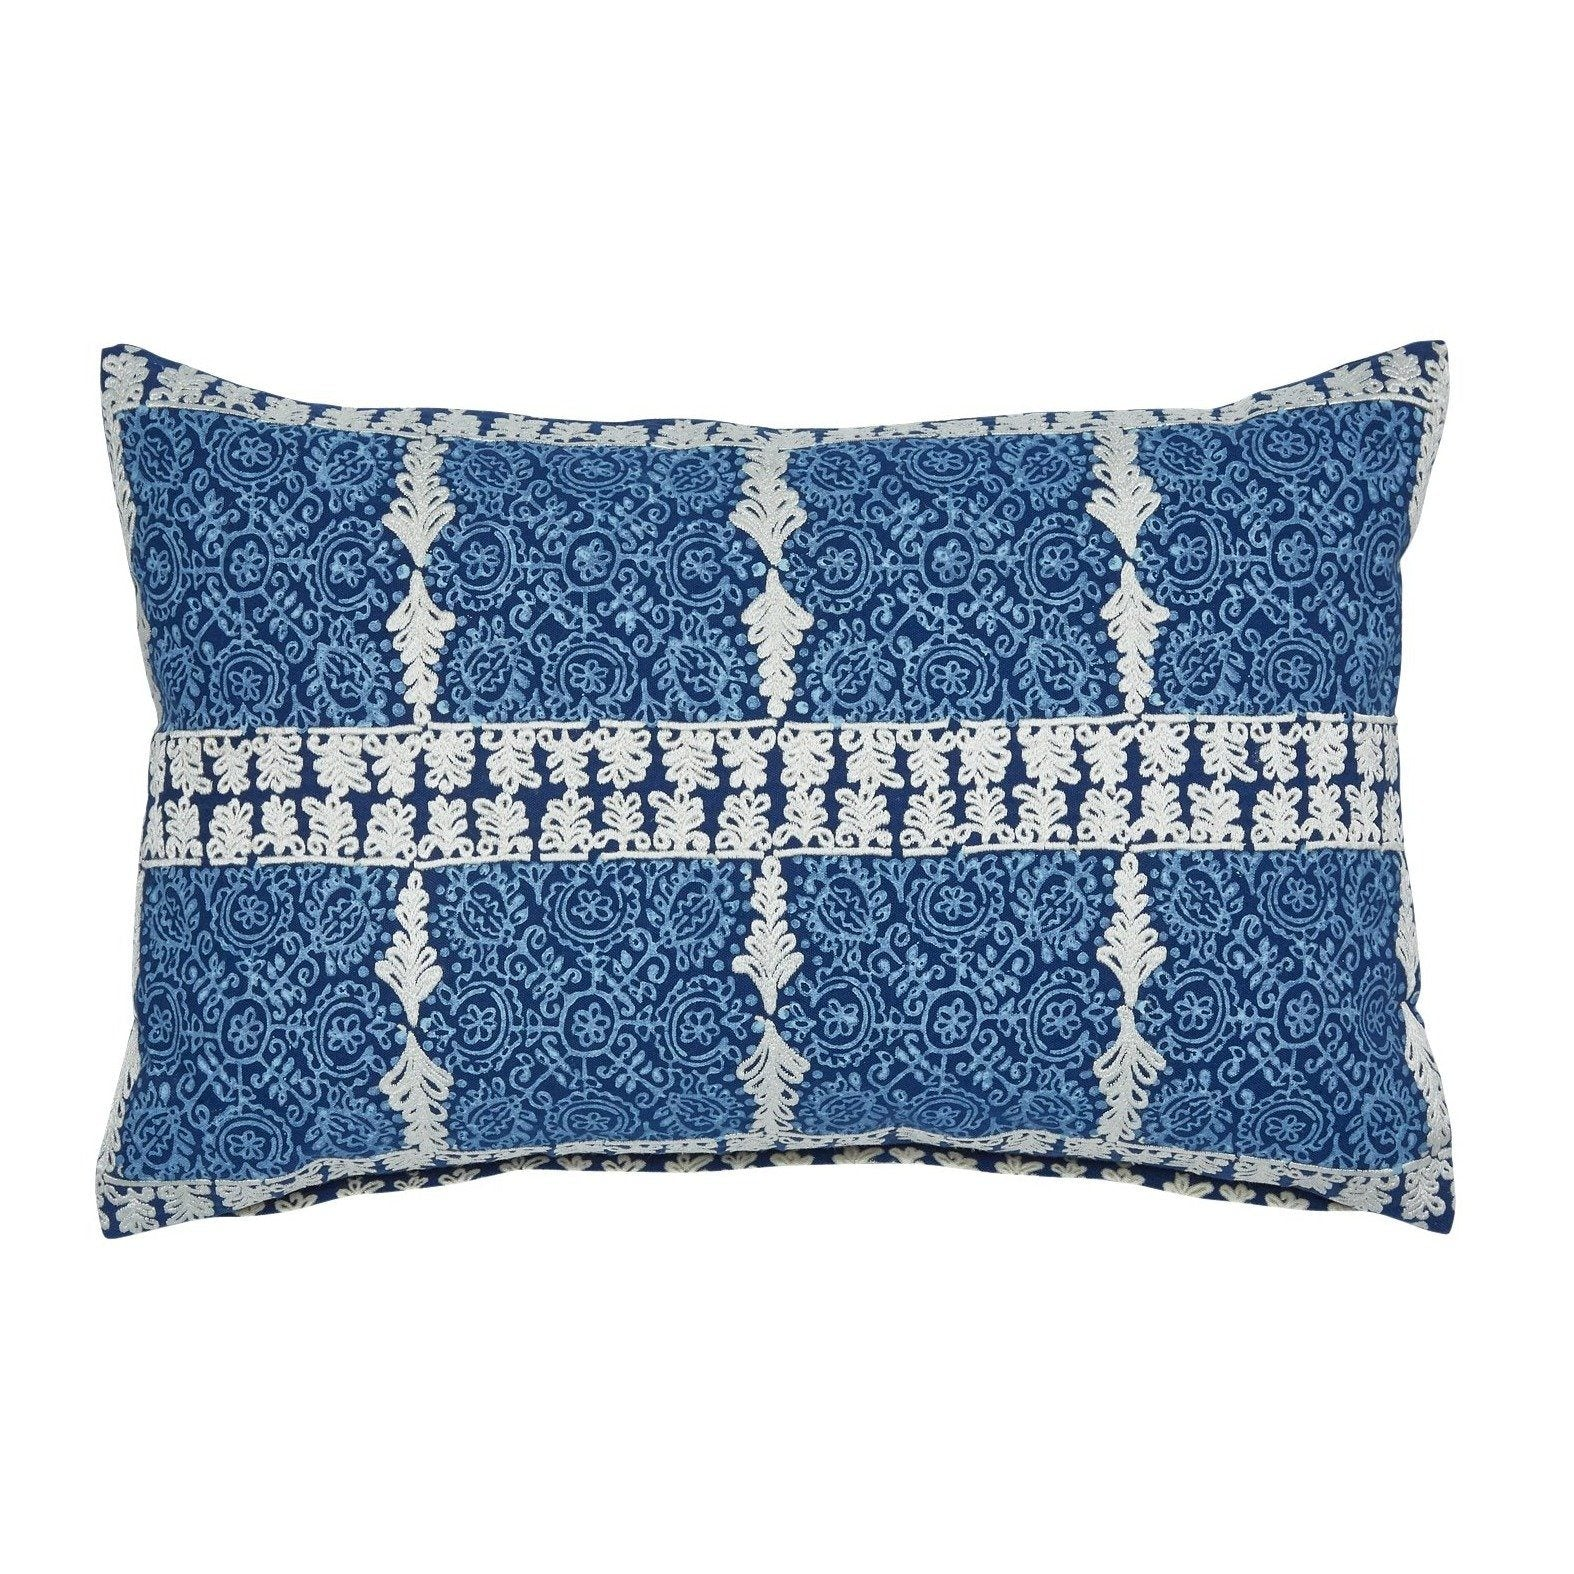 Cacarra Decorative Pillow by John Robshaw